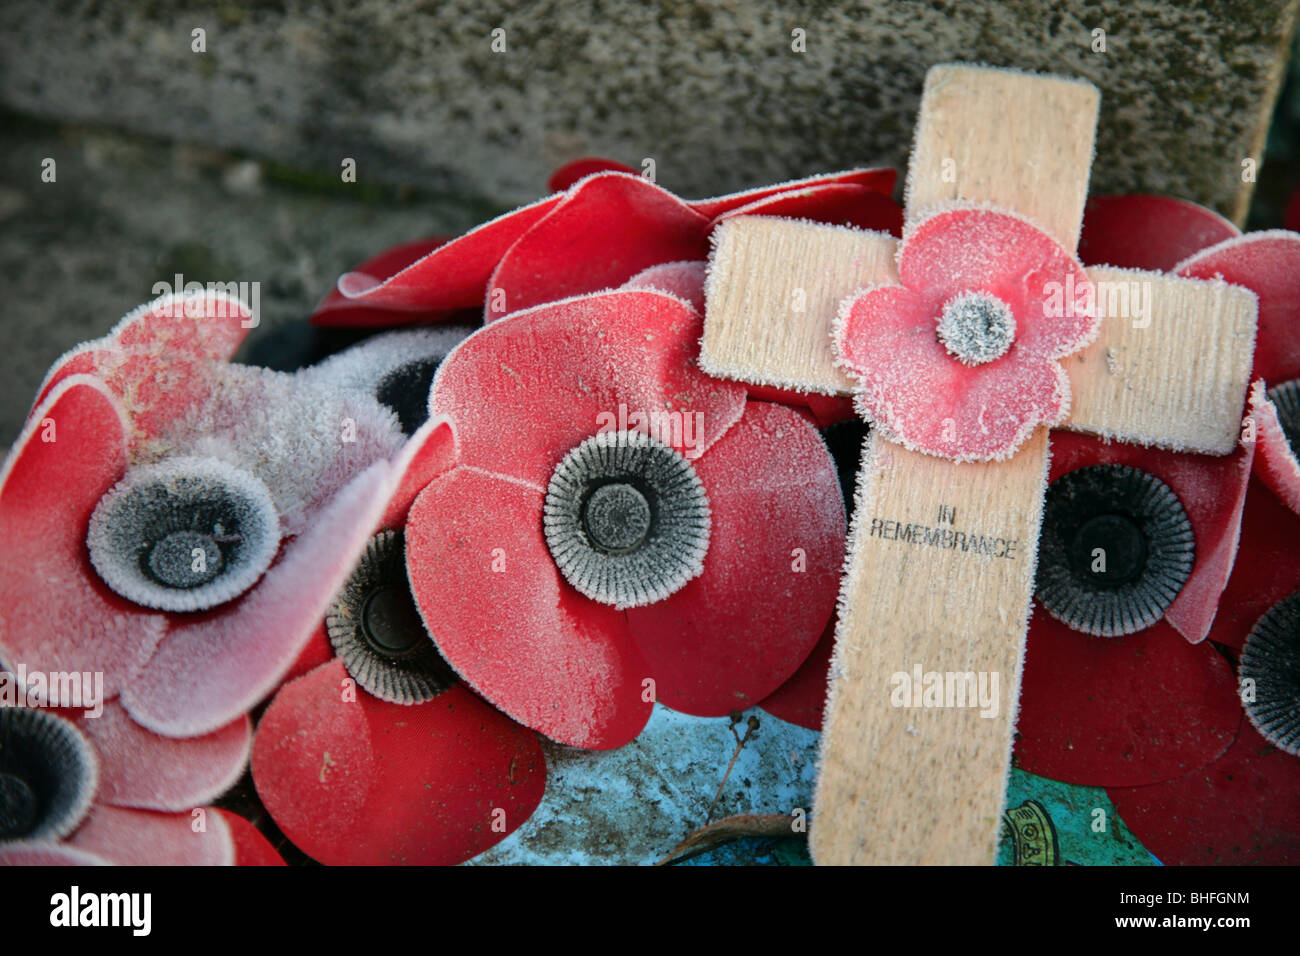 Frost and ice on Remembrance Day poppies and cross. - Stock Image